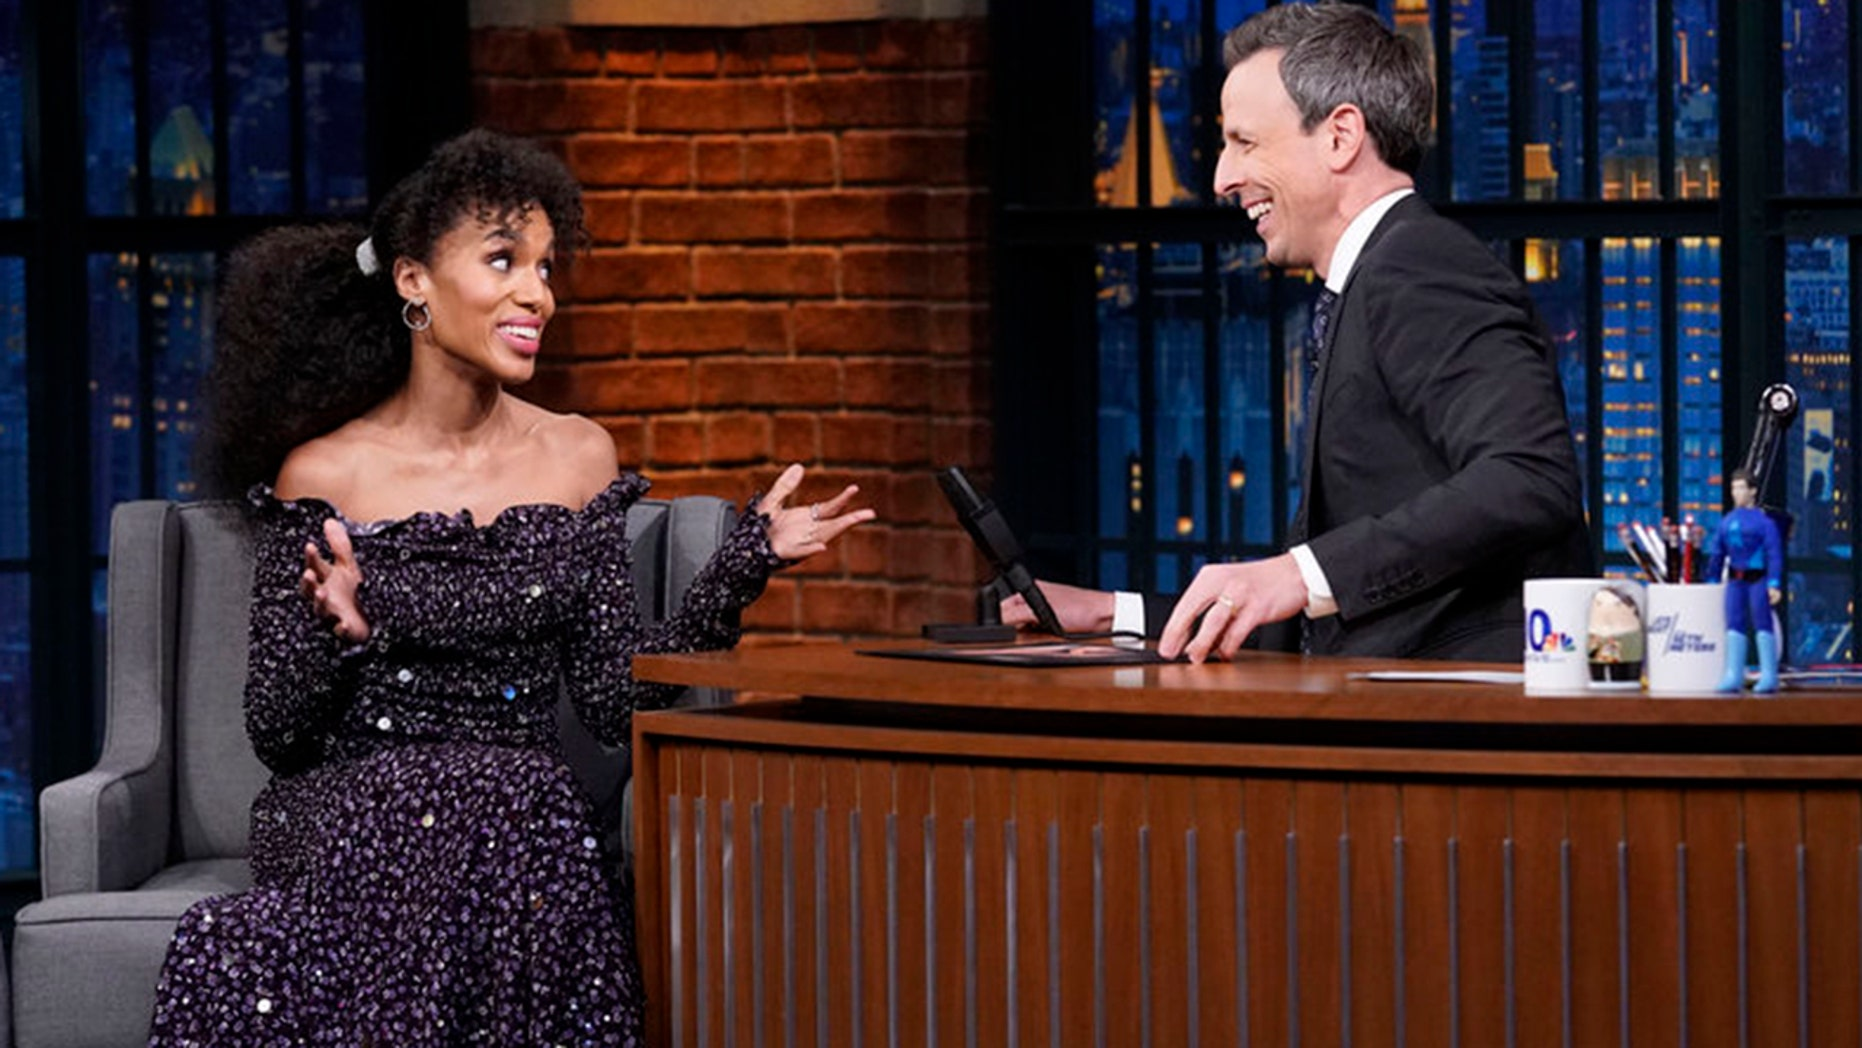 Actress Kerry Washington during an interview with host Seth Meyers on November 12, 2018.